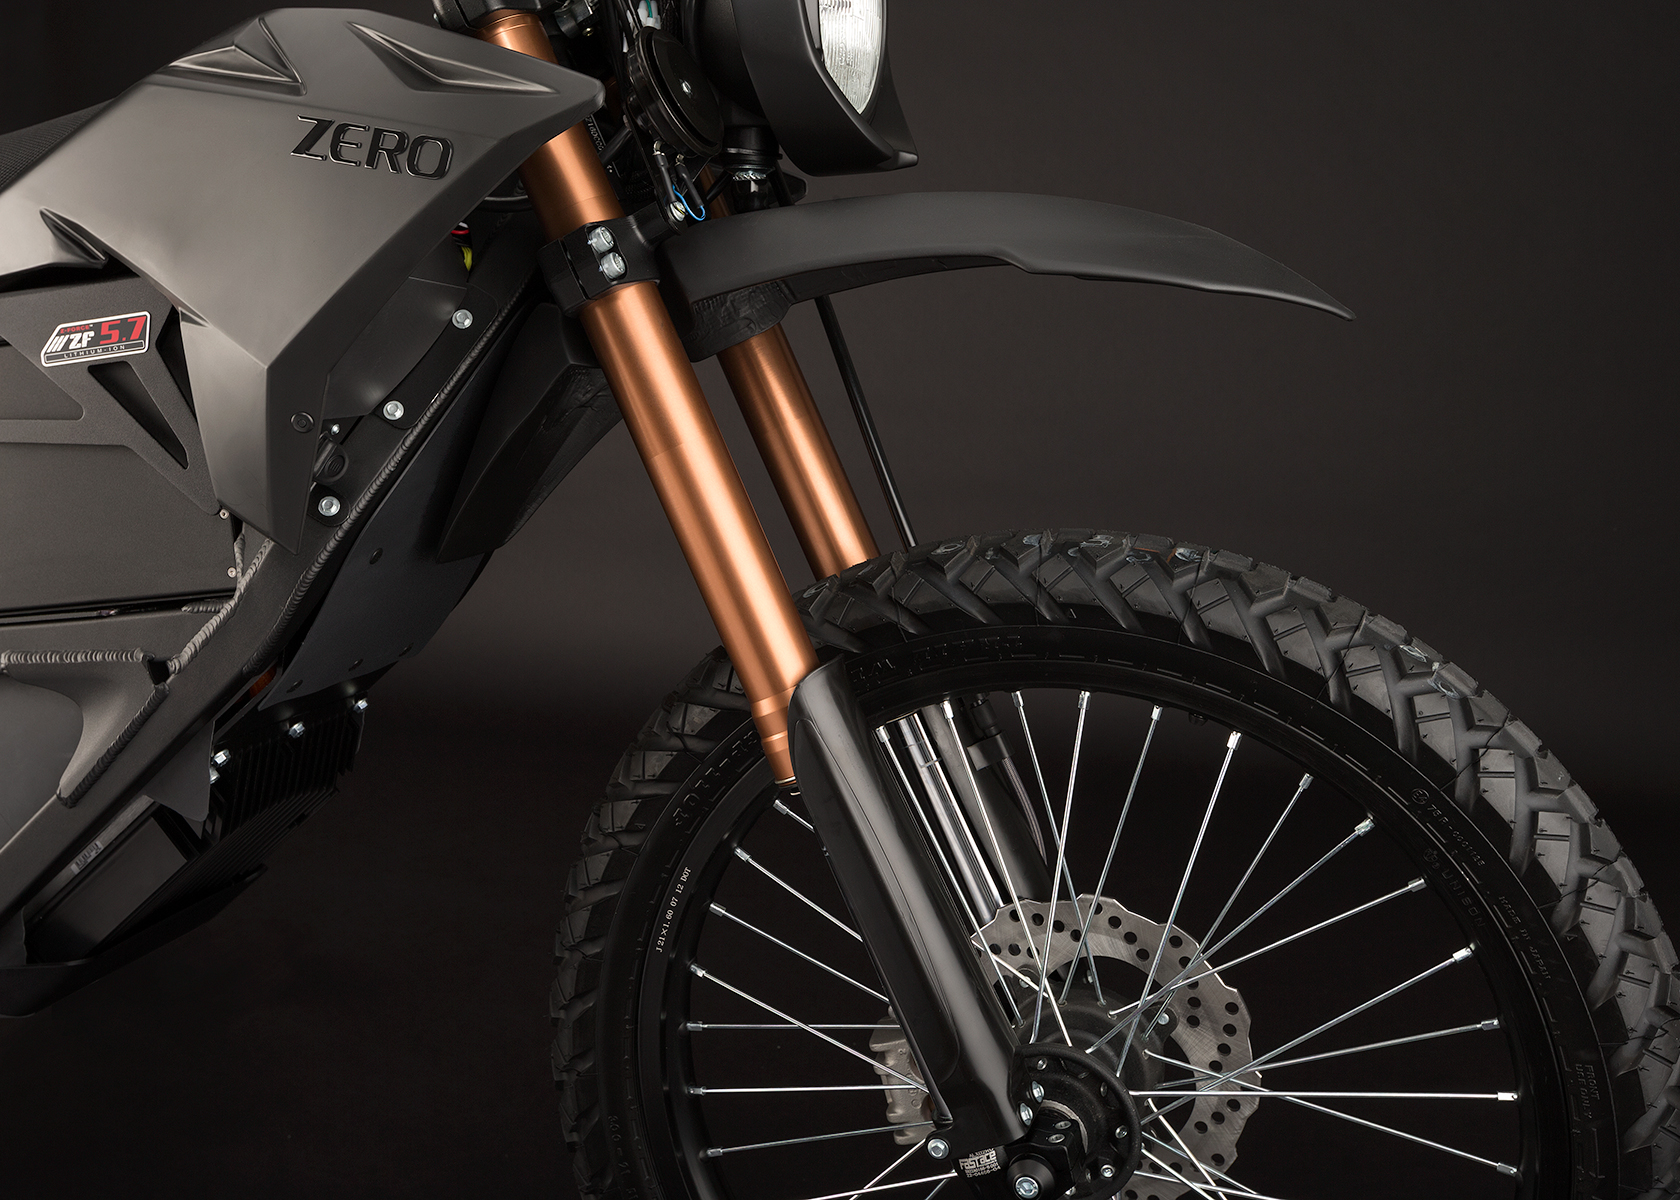 '.2013 Zero FX Electric Motorcycle: Front Fork.'